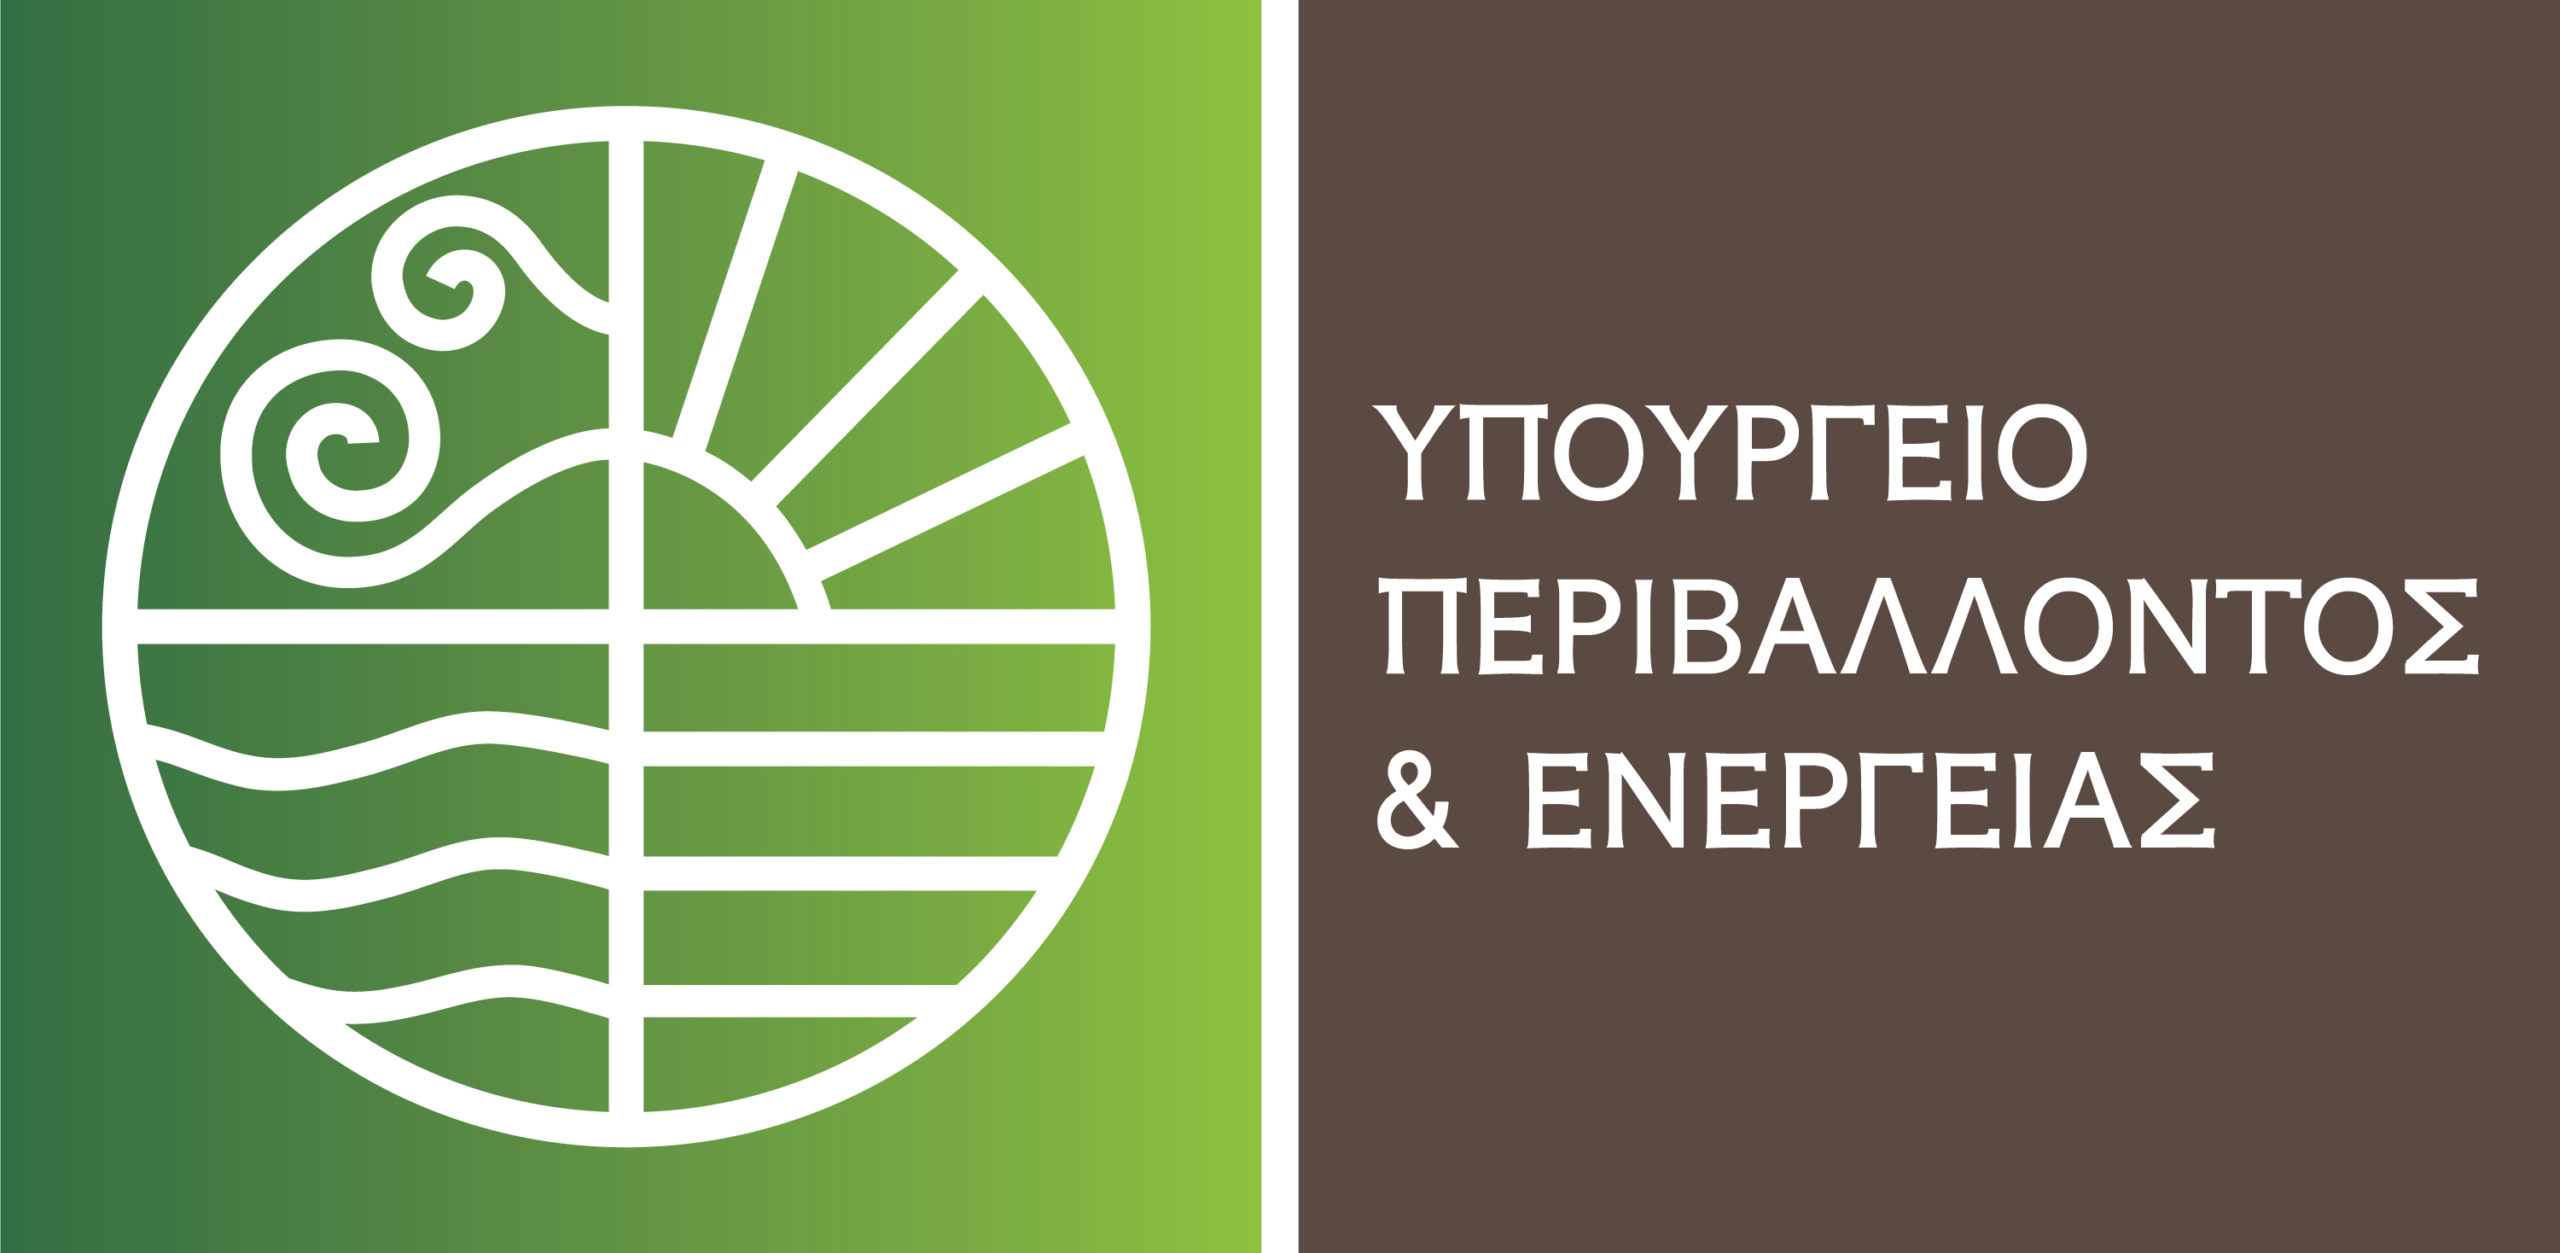 https://europeanplasticspact.org/wp-content/uploads/2020/03/Hellenic-Ministry-of-Environment-and-Energy-scaled.jpg